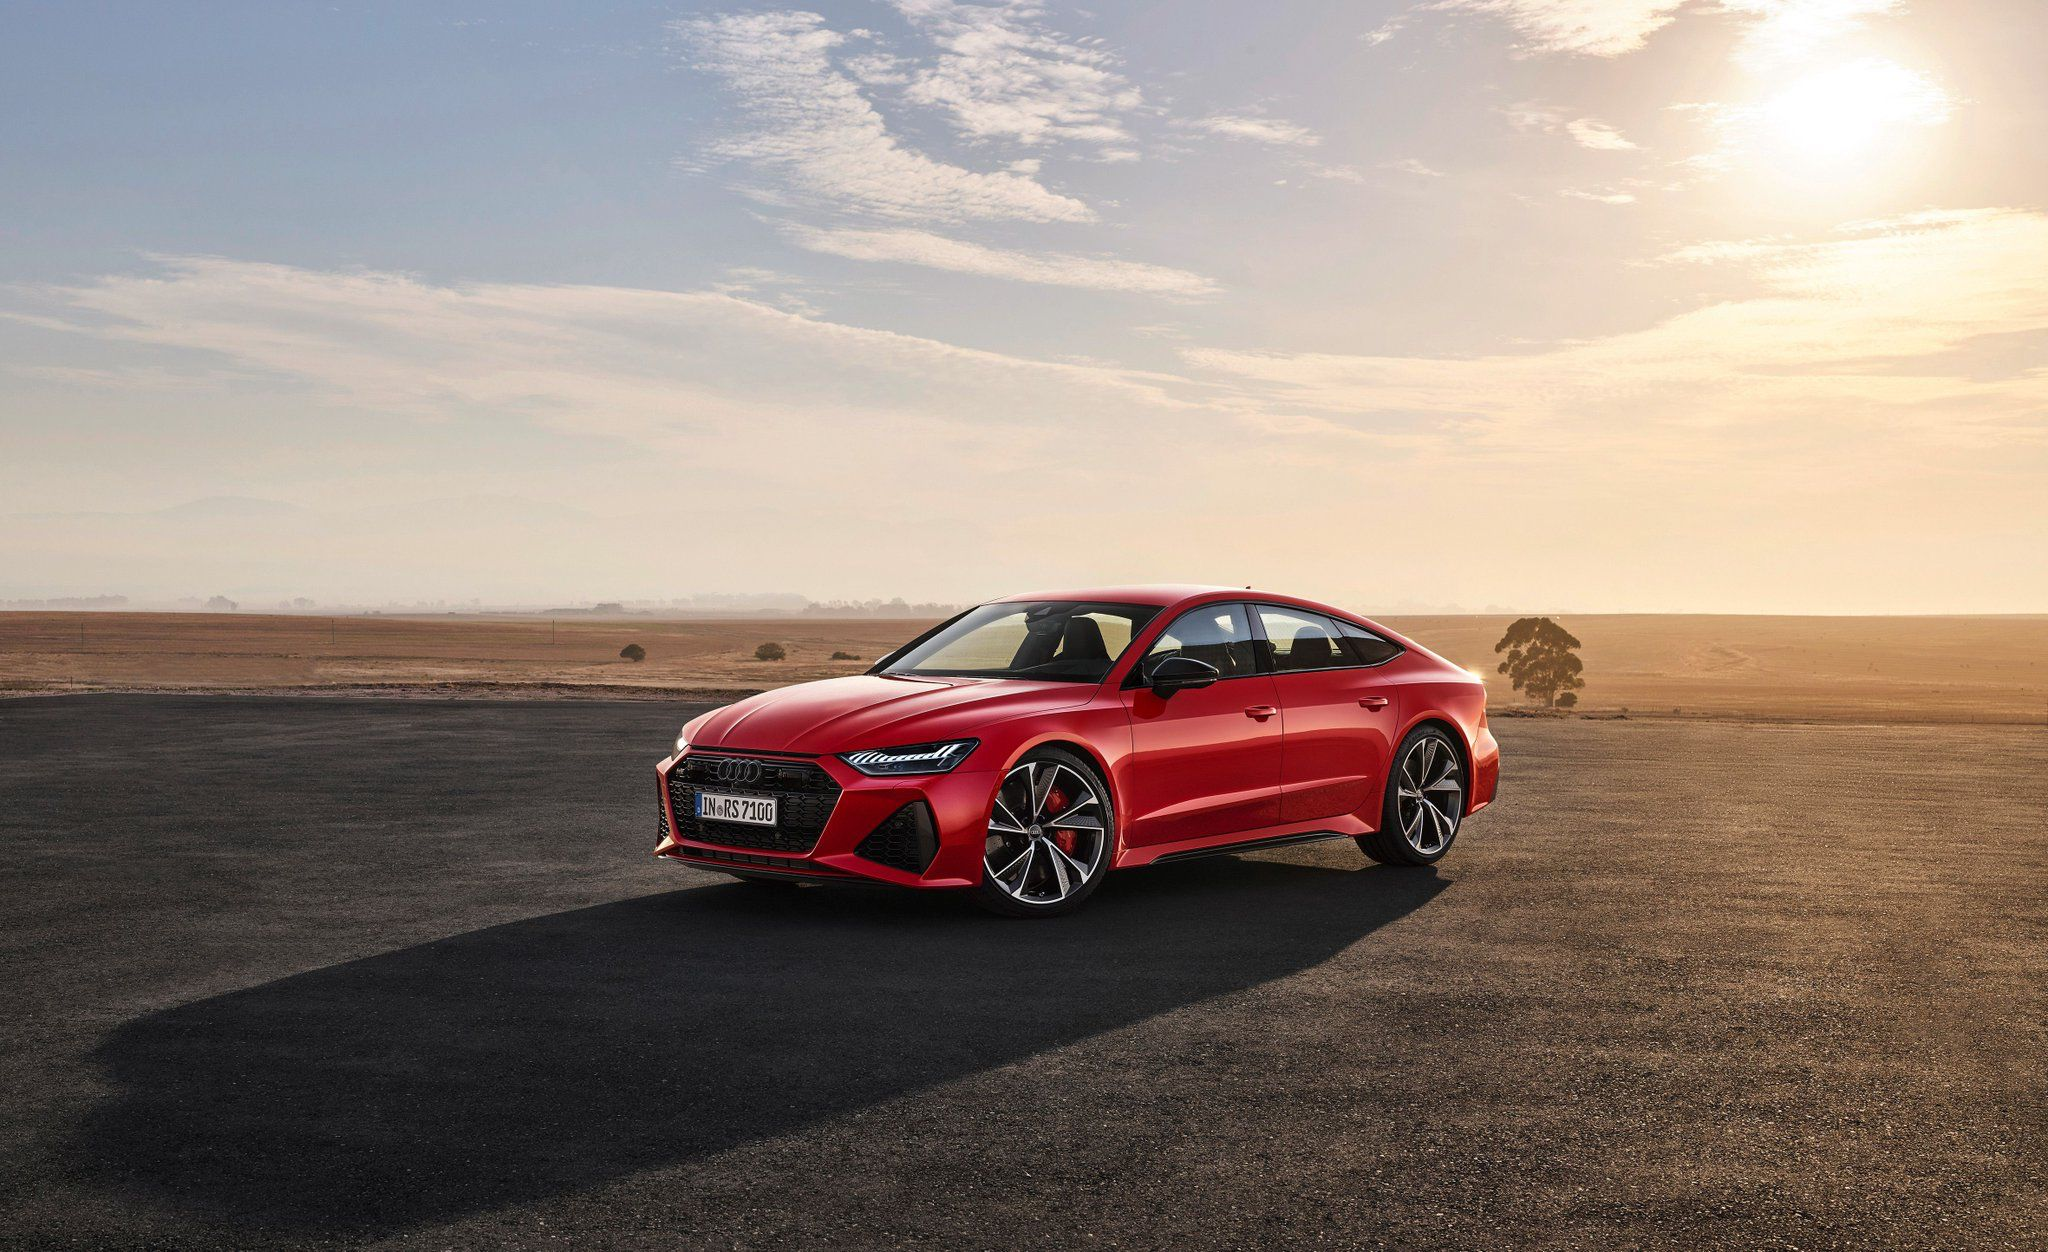 Pin By Graphite Shades On Just 1 More Car I Promise Luxury Sedan Audi Rs7 Audi